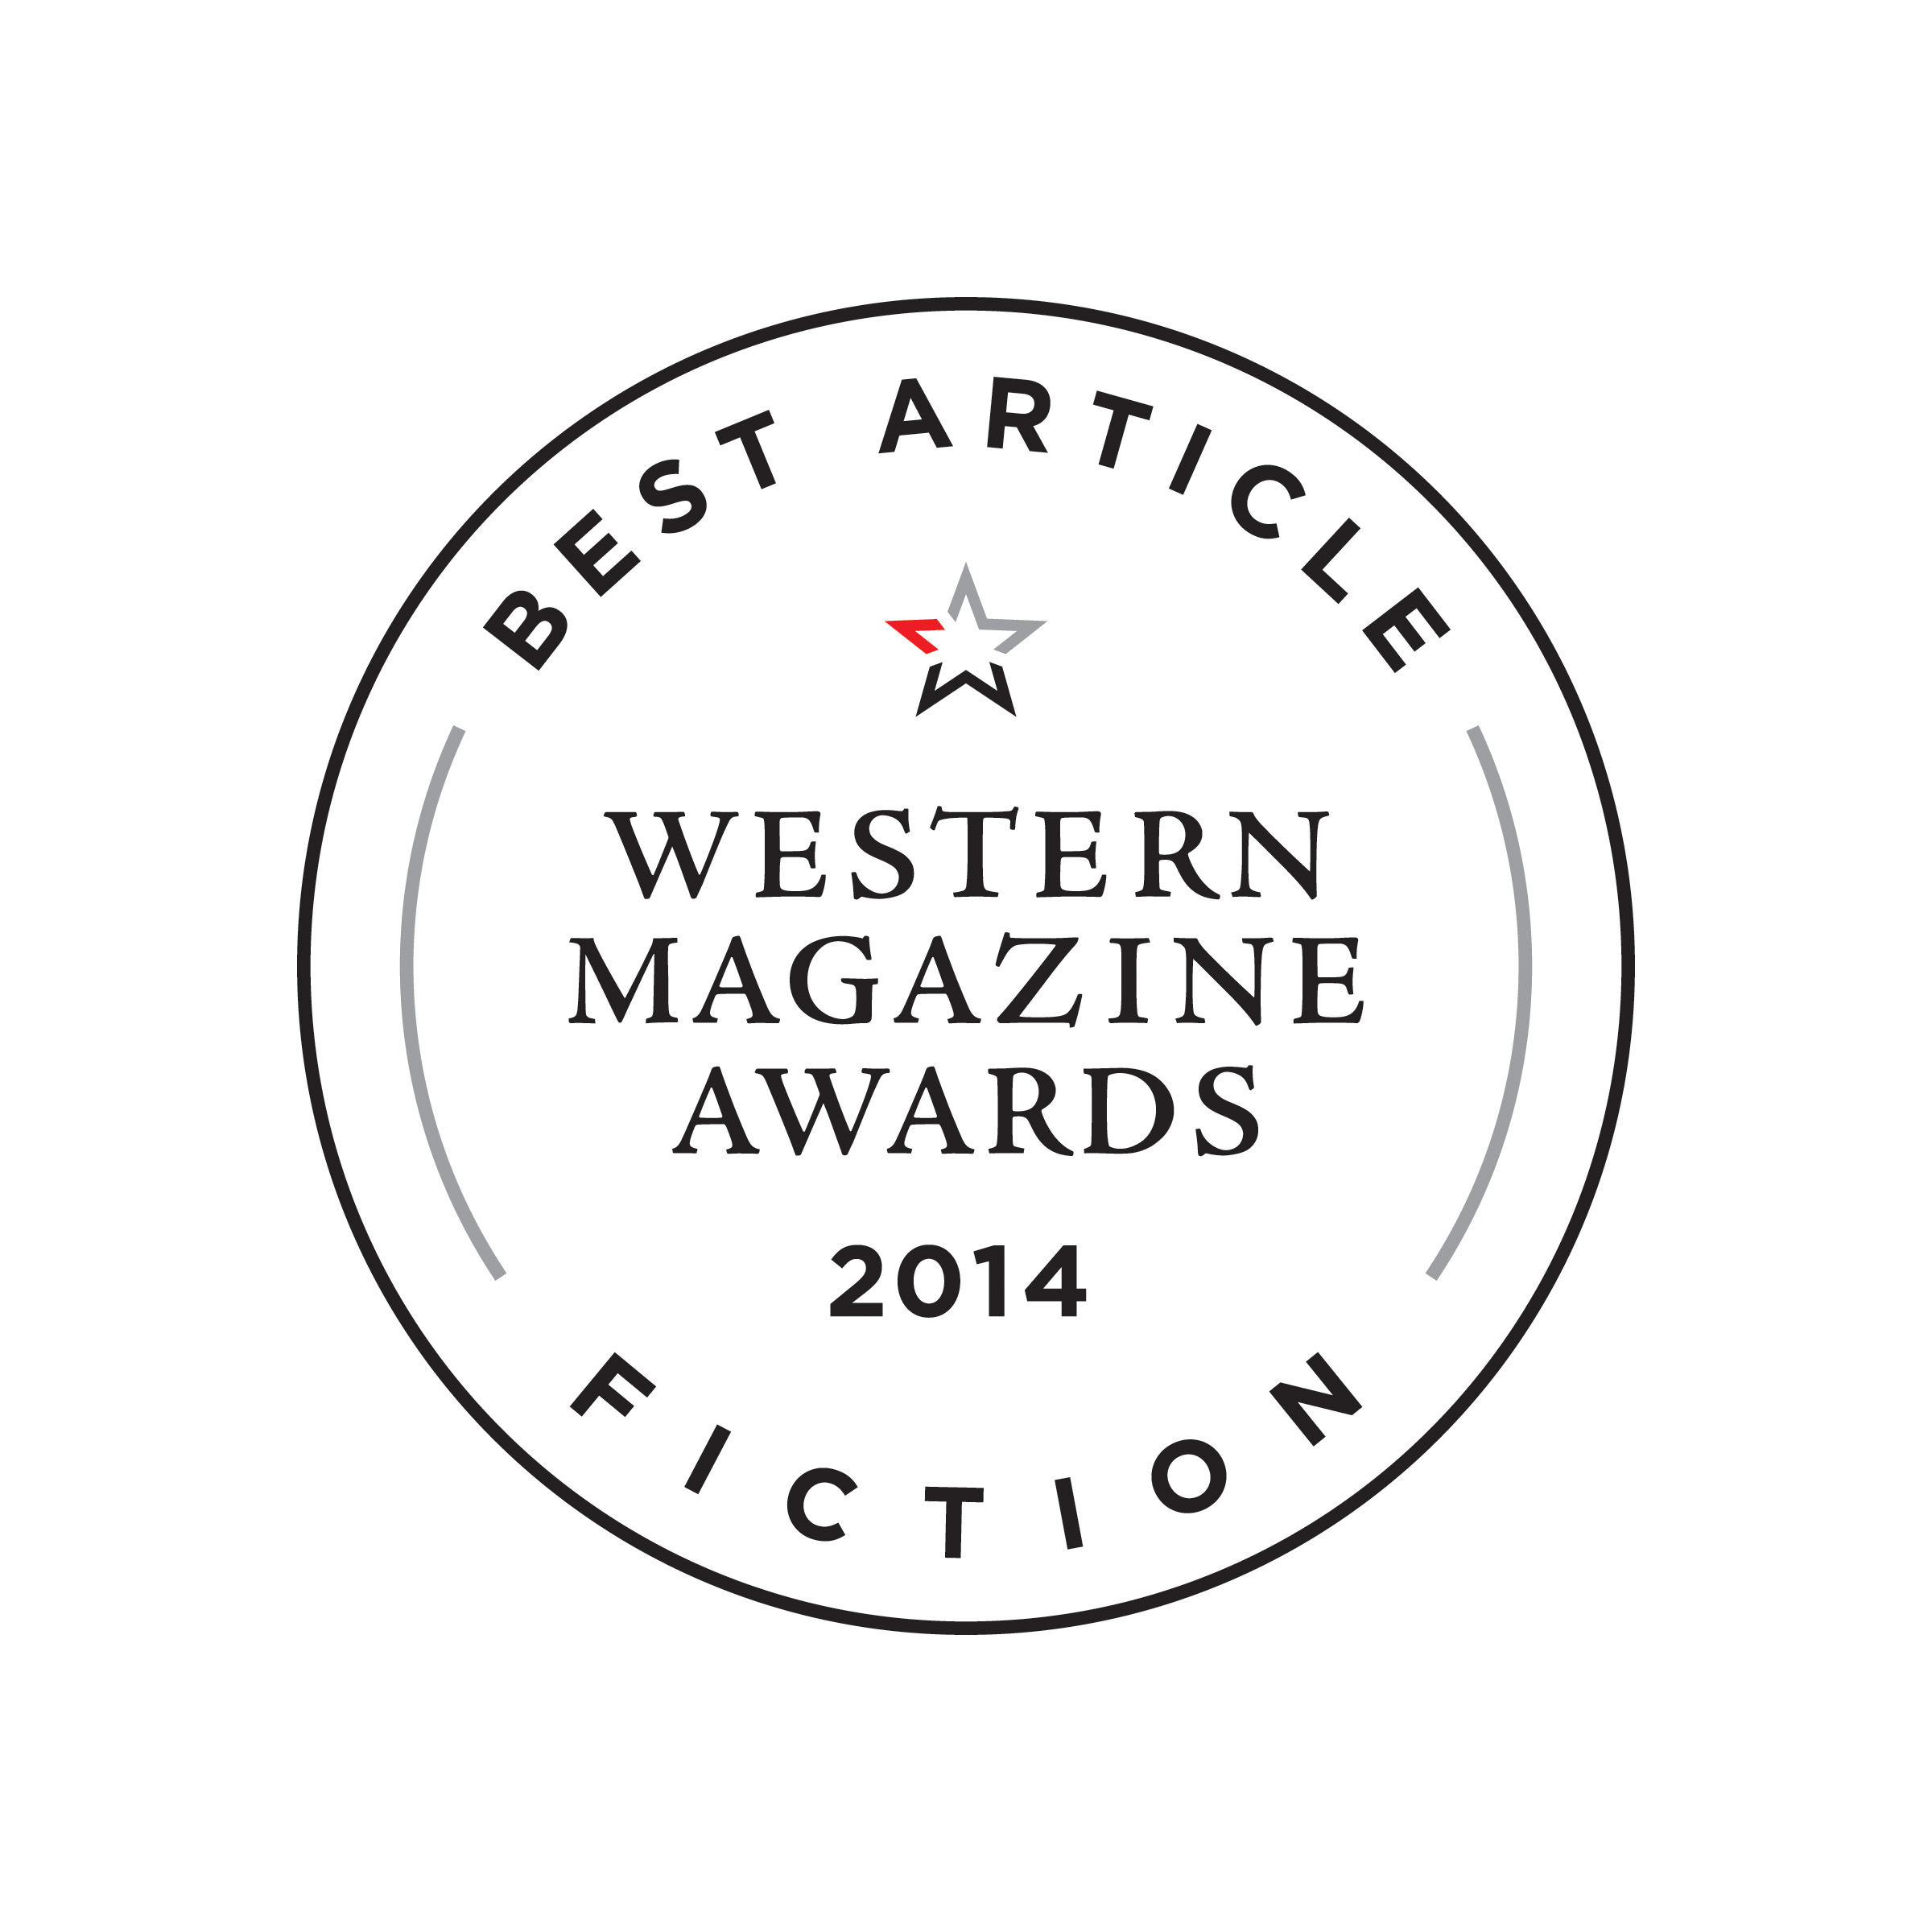 Western Magazine Awards